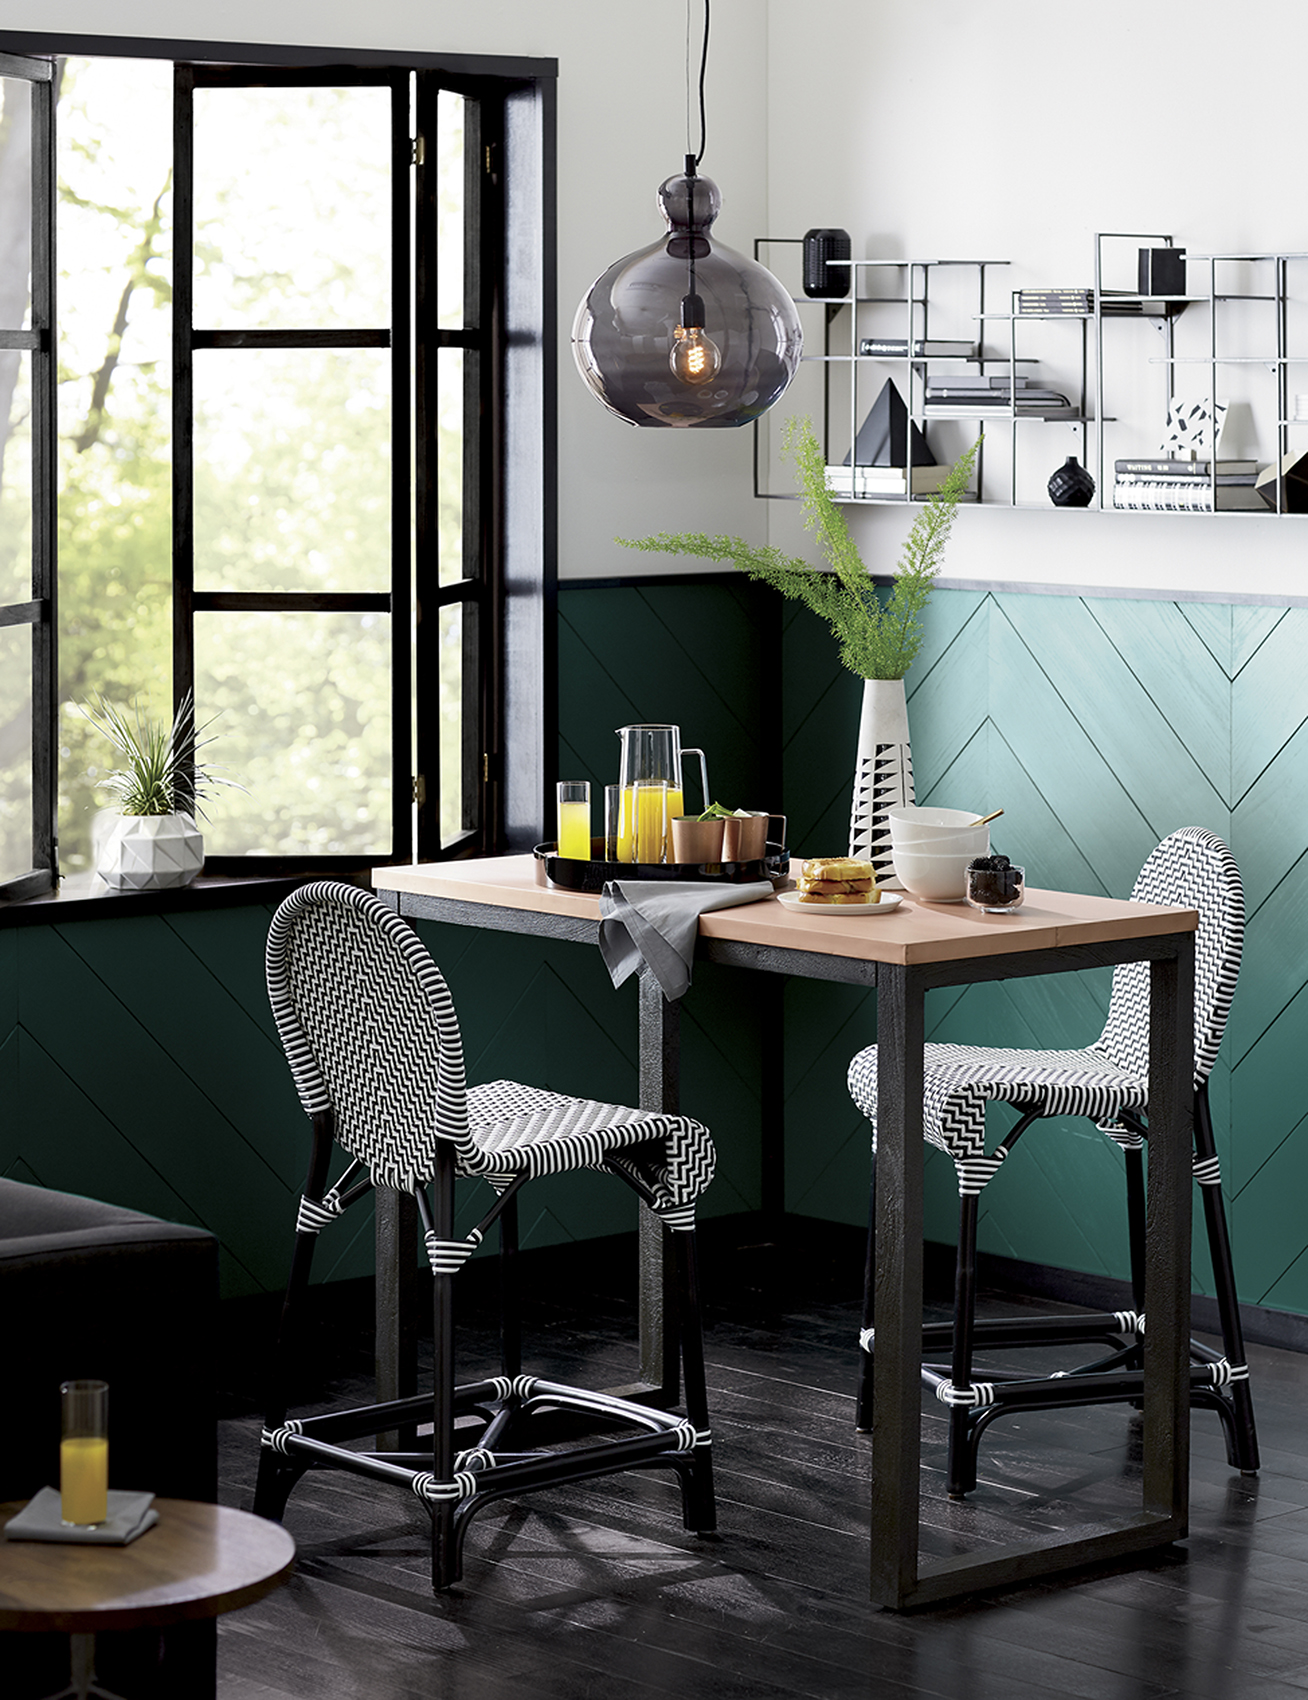 Dining table with chevron print chairs